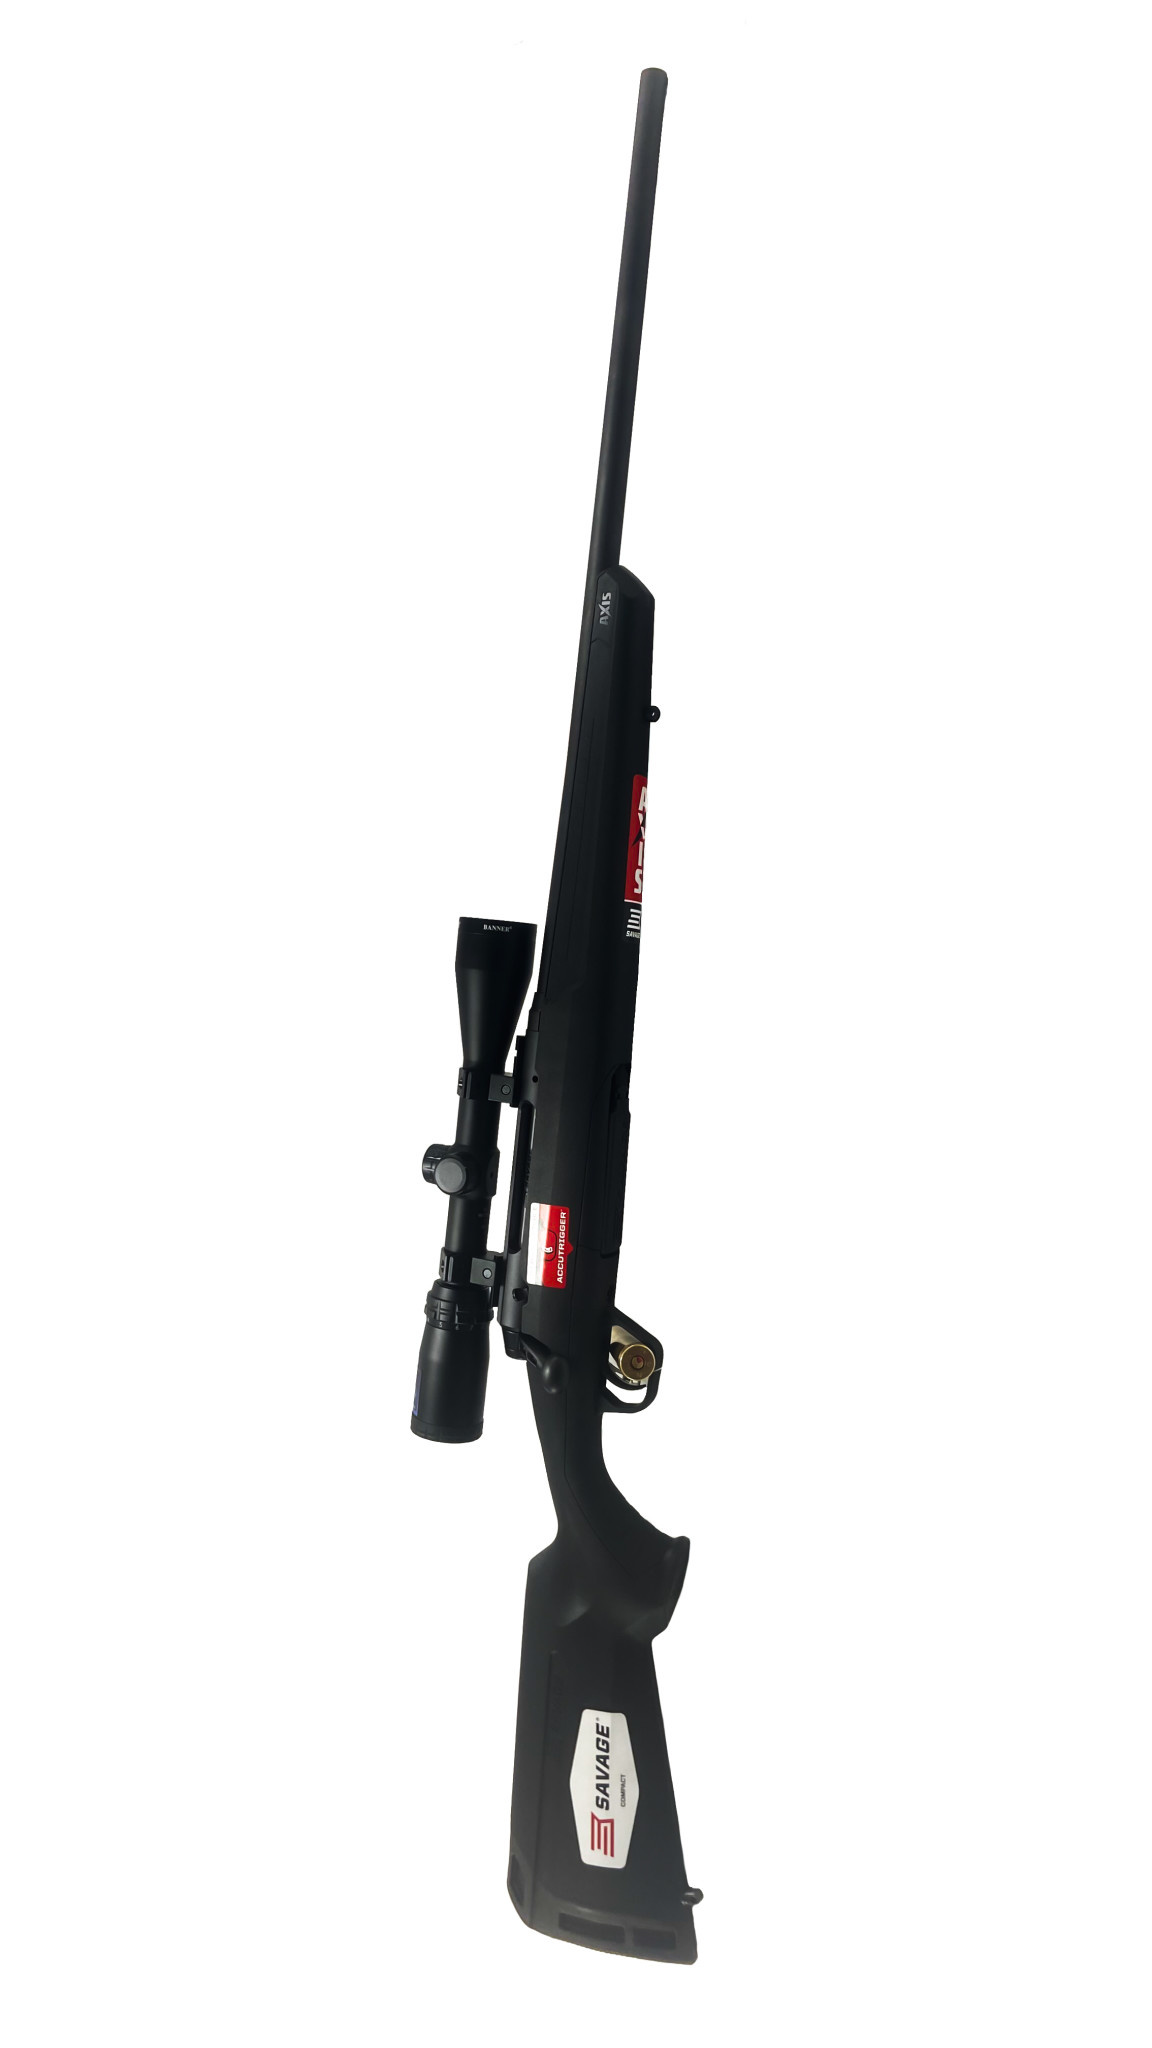 Savage Axis II XP 6.5 Creedmor Compact w/Bushnell Banner 3-9x40mm